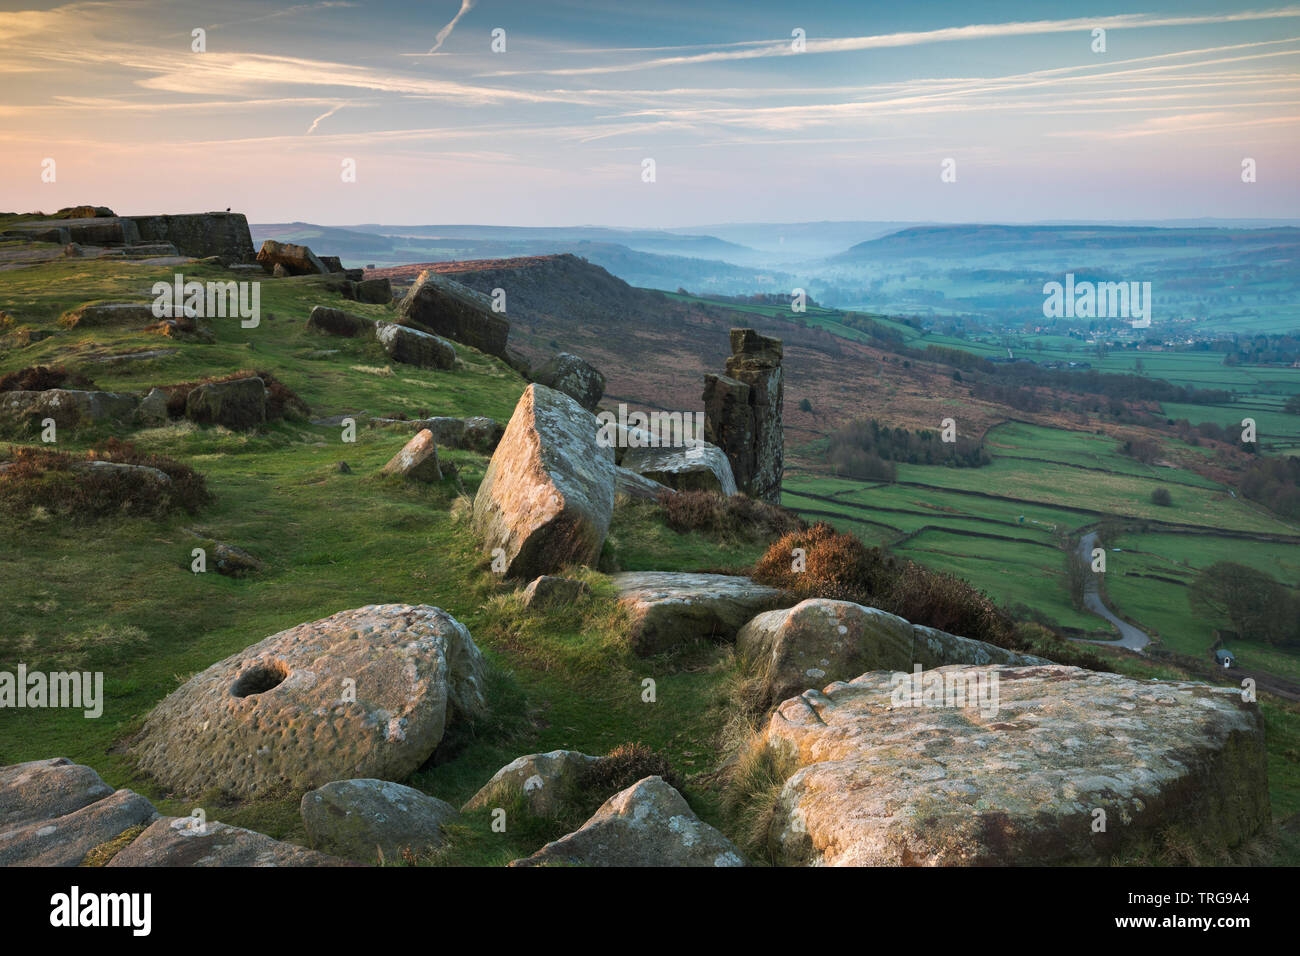 Curbar Edge, parc national de Peak District, Derbyshire, Angleterre, RU Banque D'Images